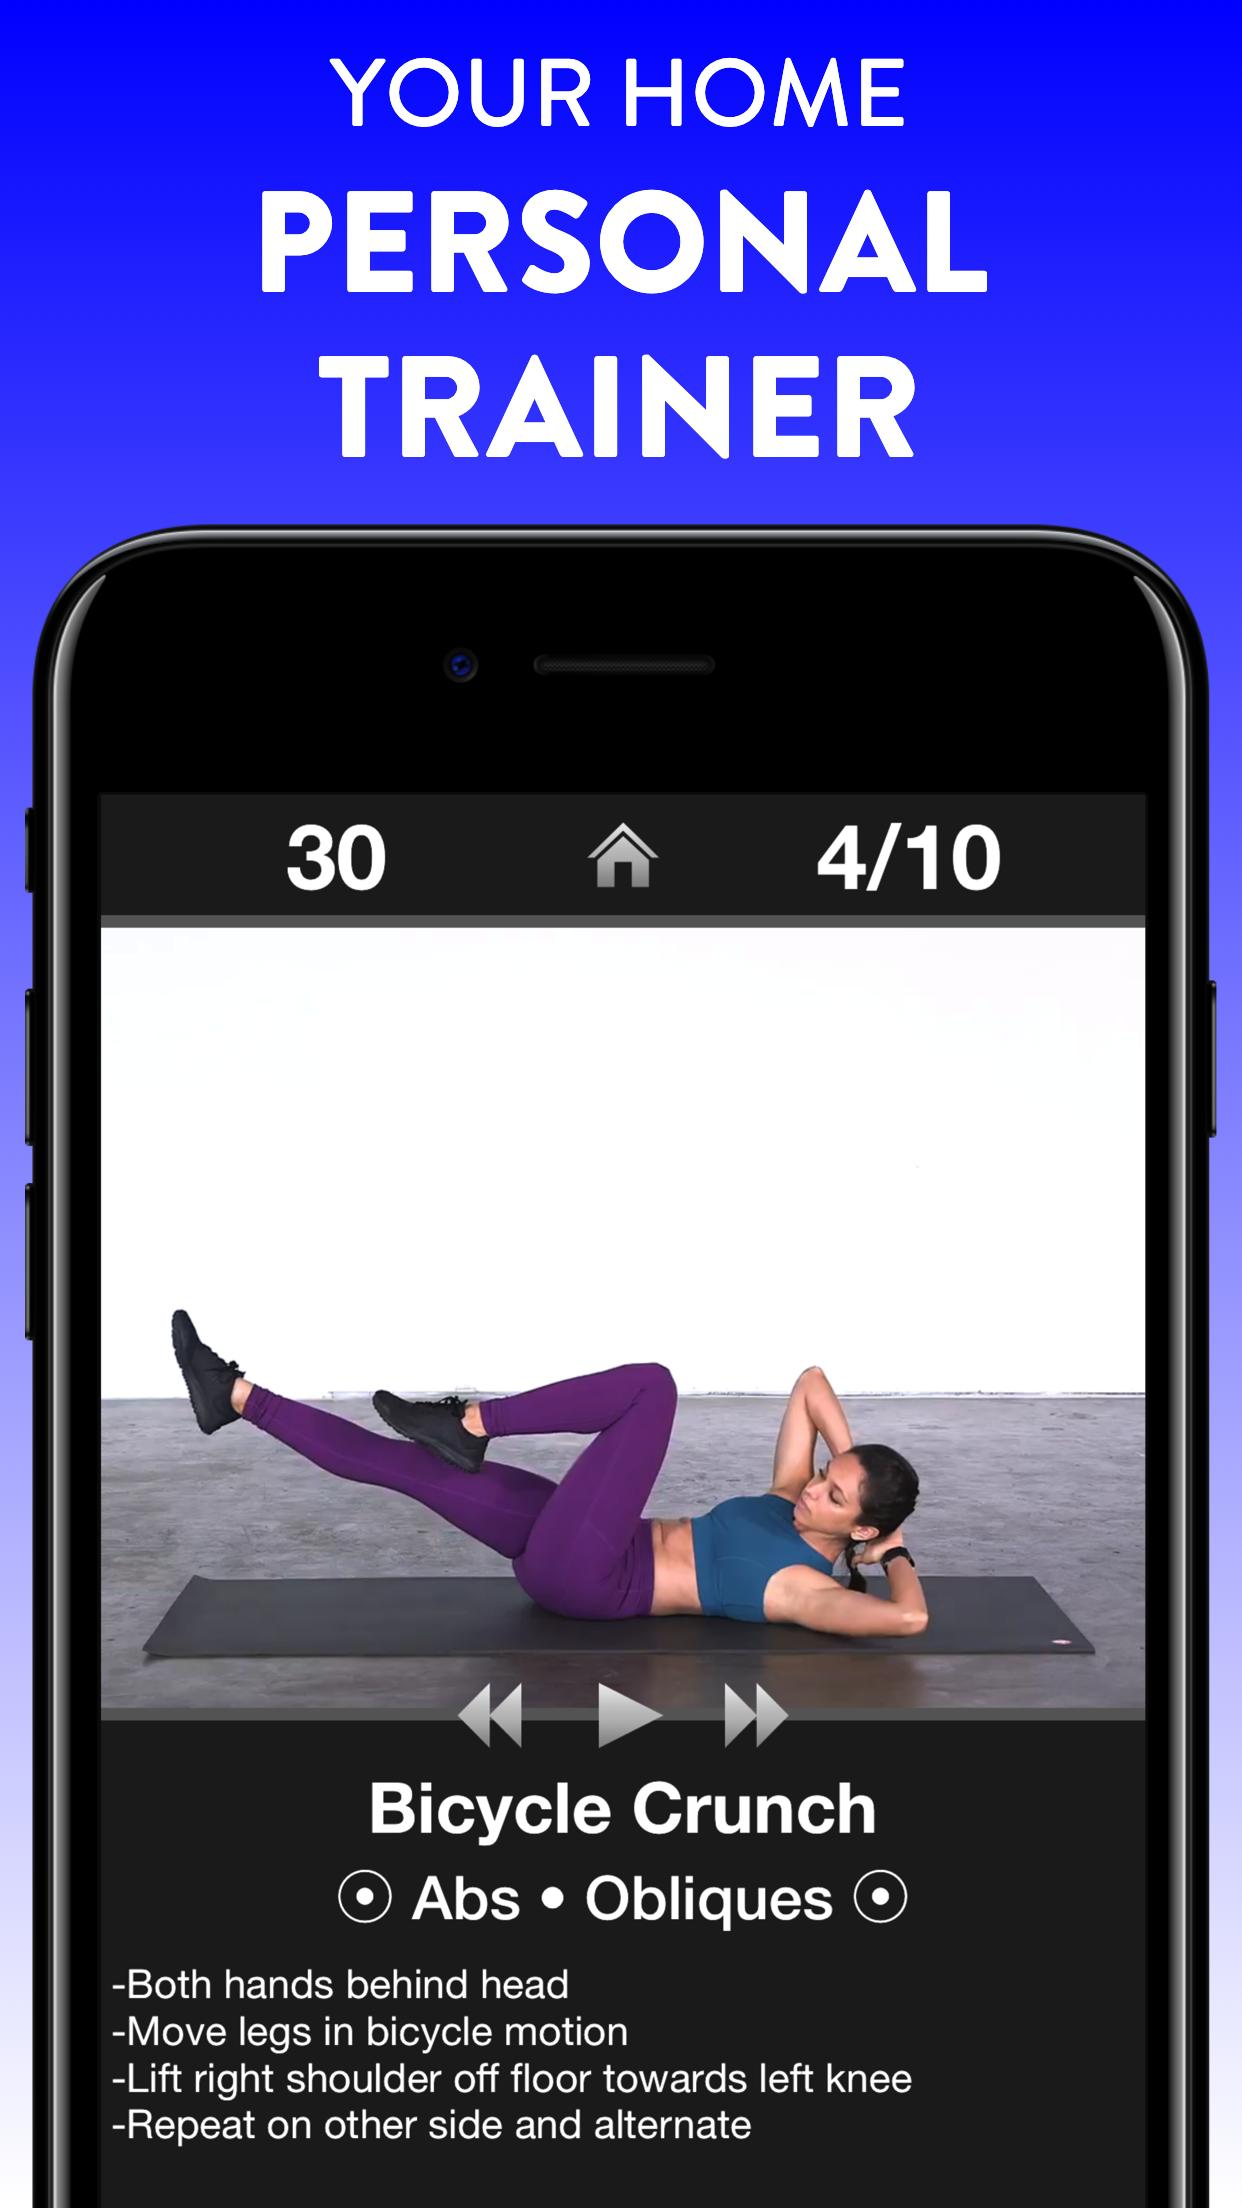 Daily Workouts - Exercise Fitness Workout Trainer 6.12 Screenshot 11